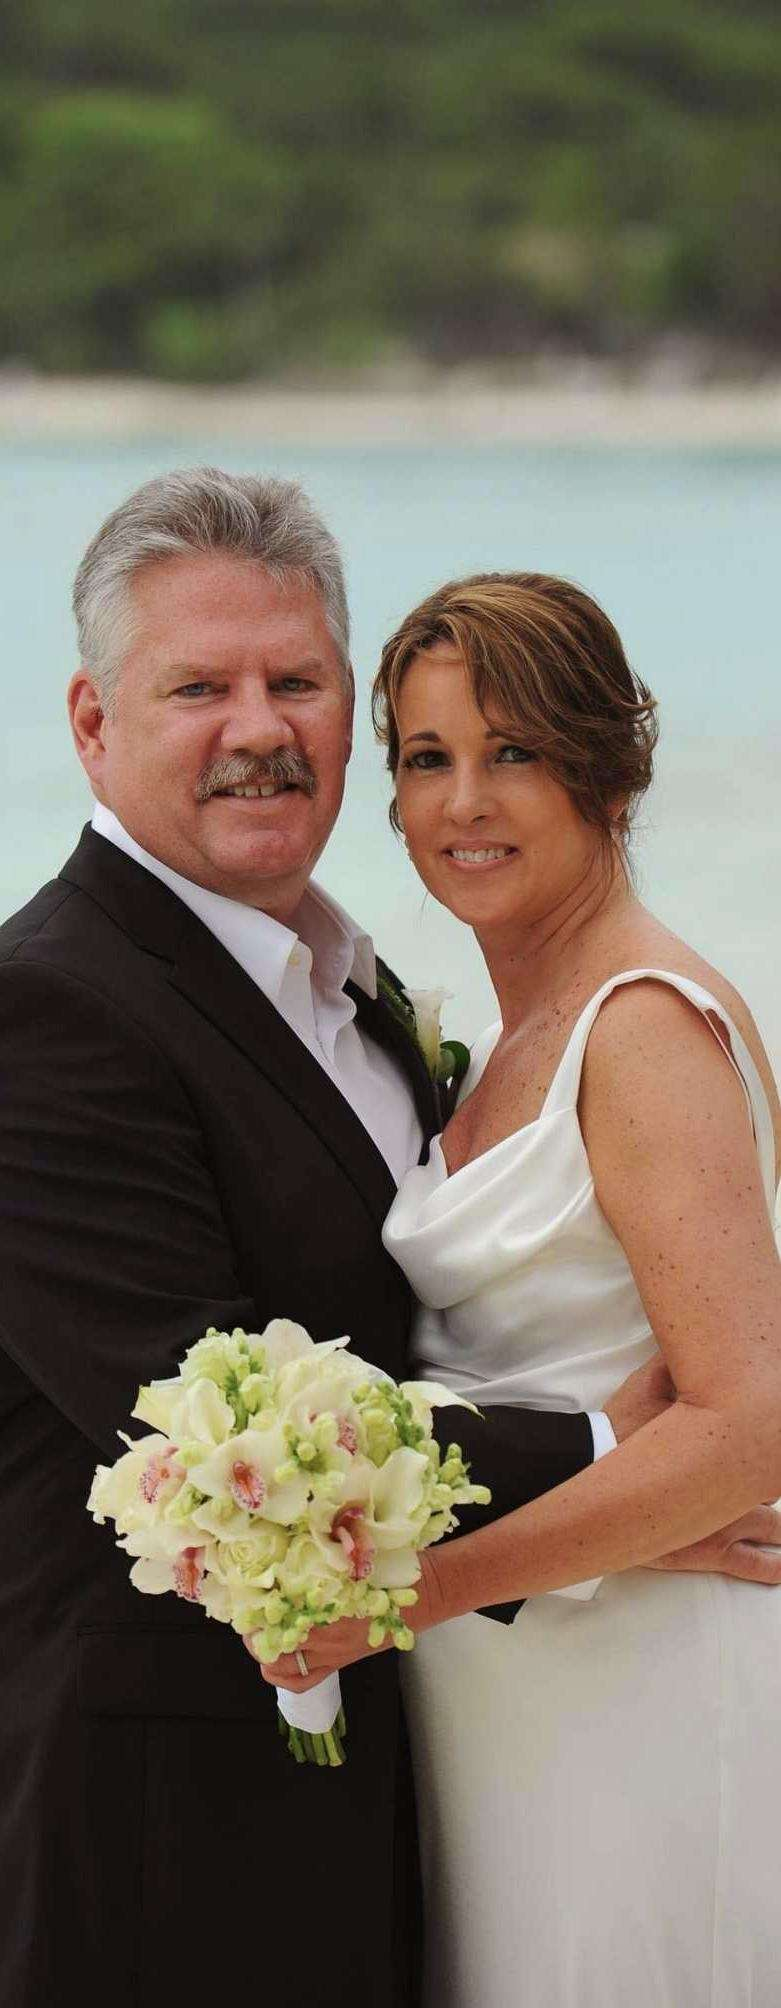 Janet and Brian Fullan of Wantagh discovered they